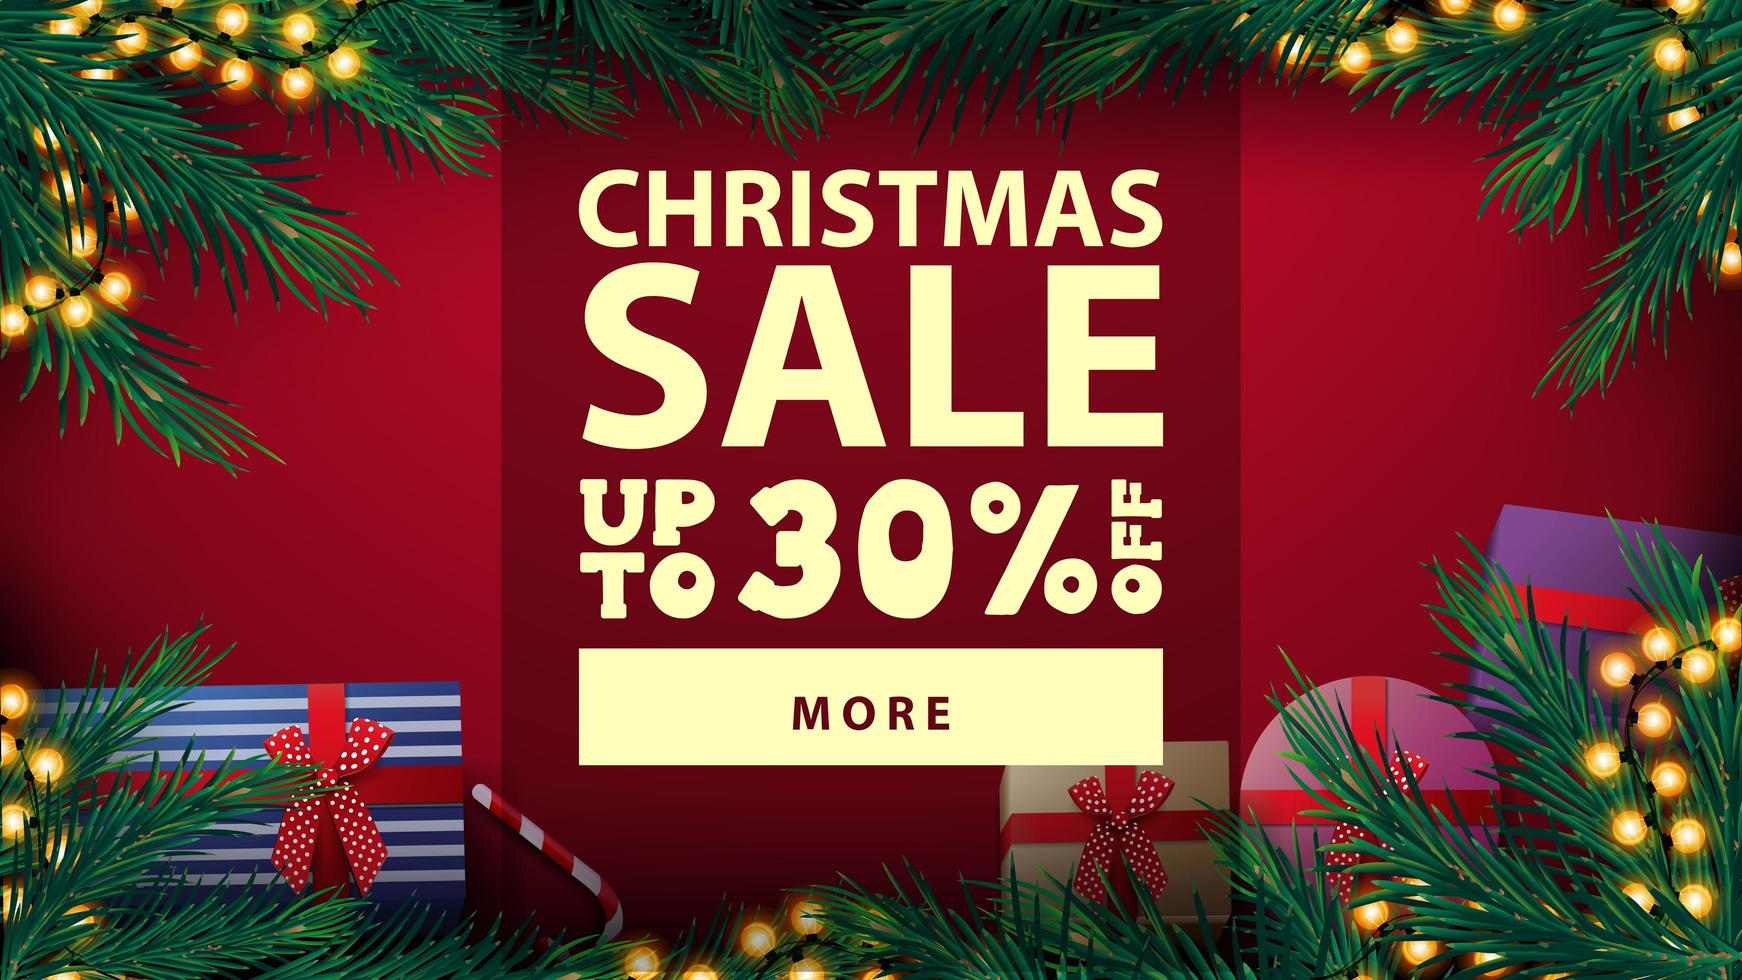 Christmas sale, up to 30 off, beautiful red discount banner with Christmas tree frame with yellow bulb garland and presents, top view vector